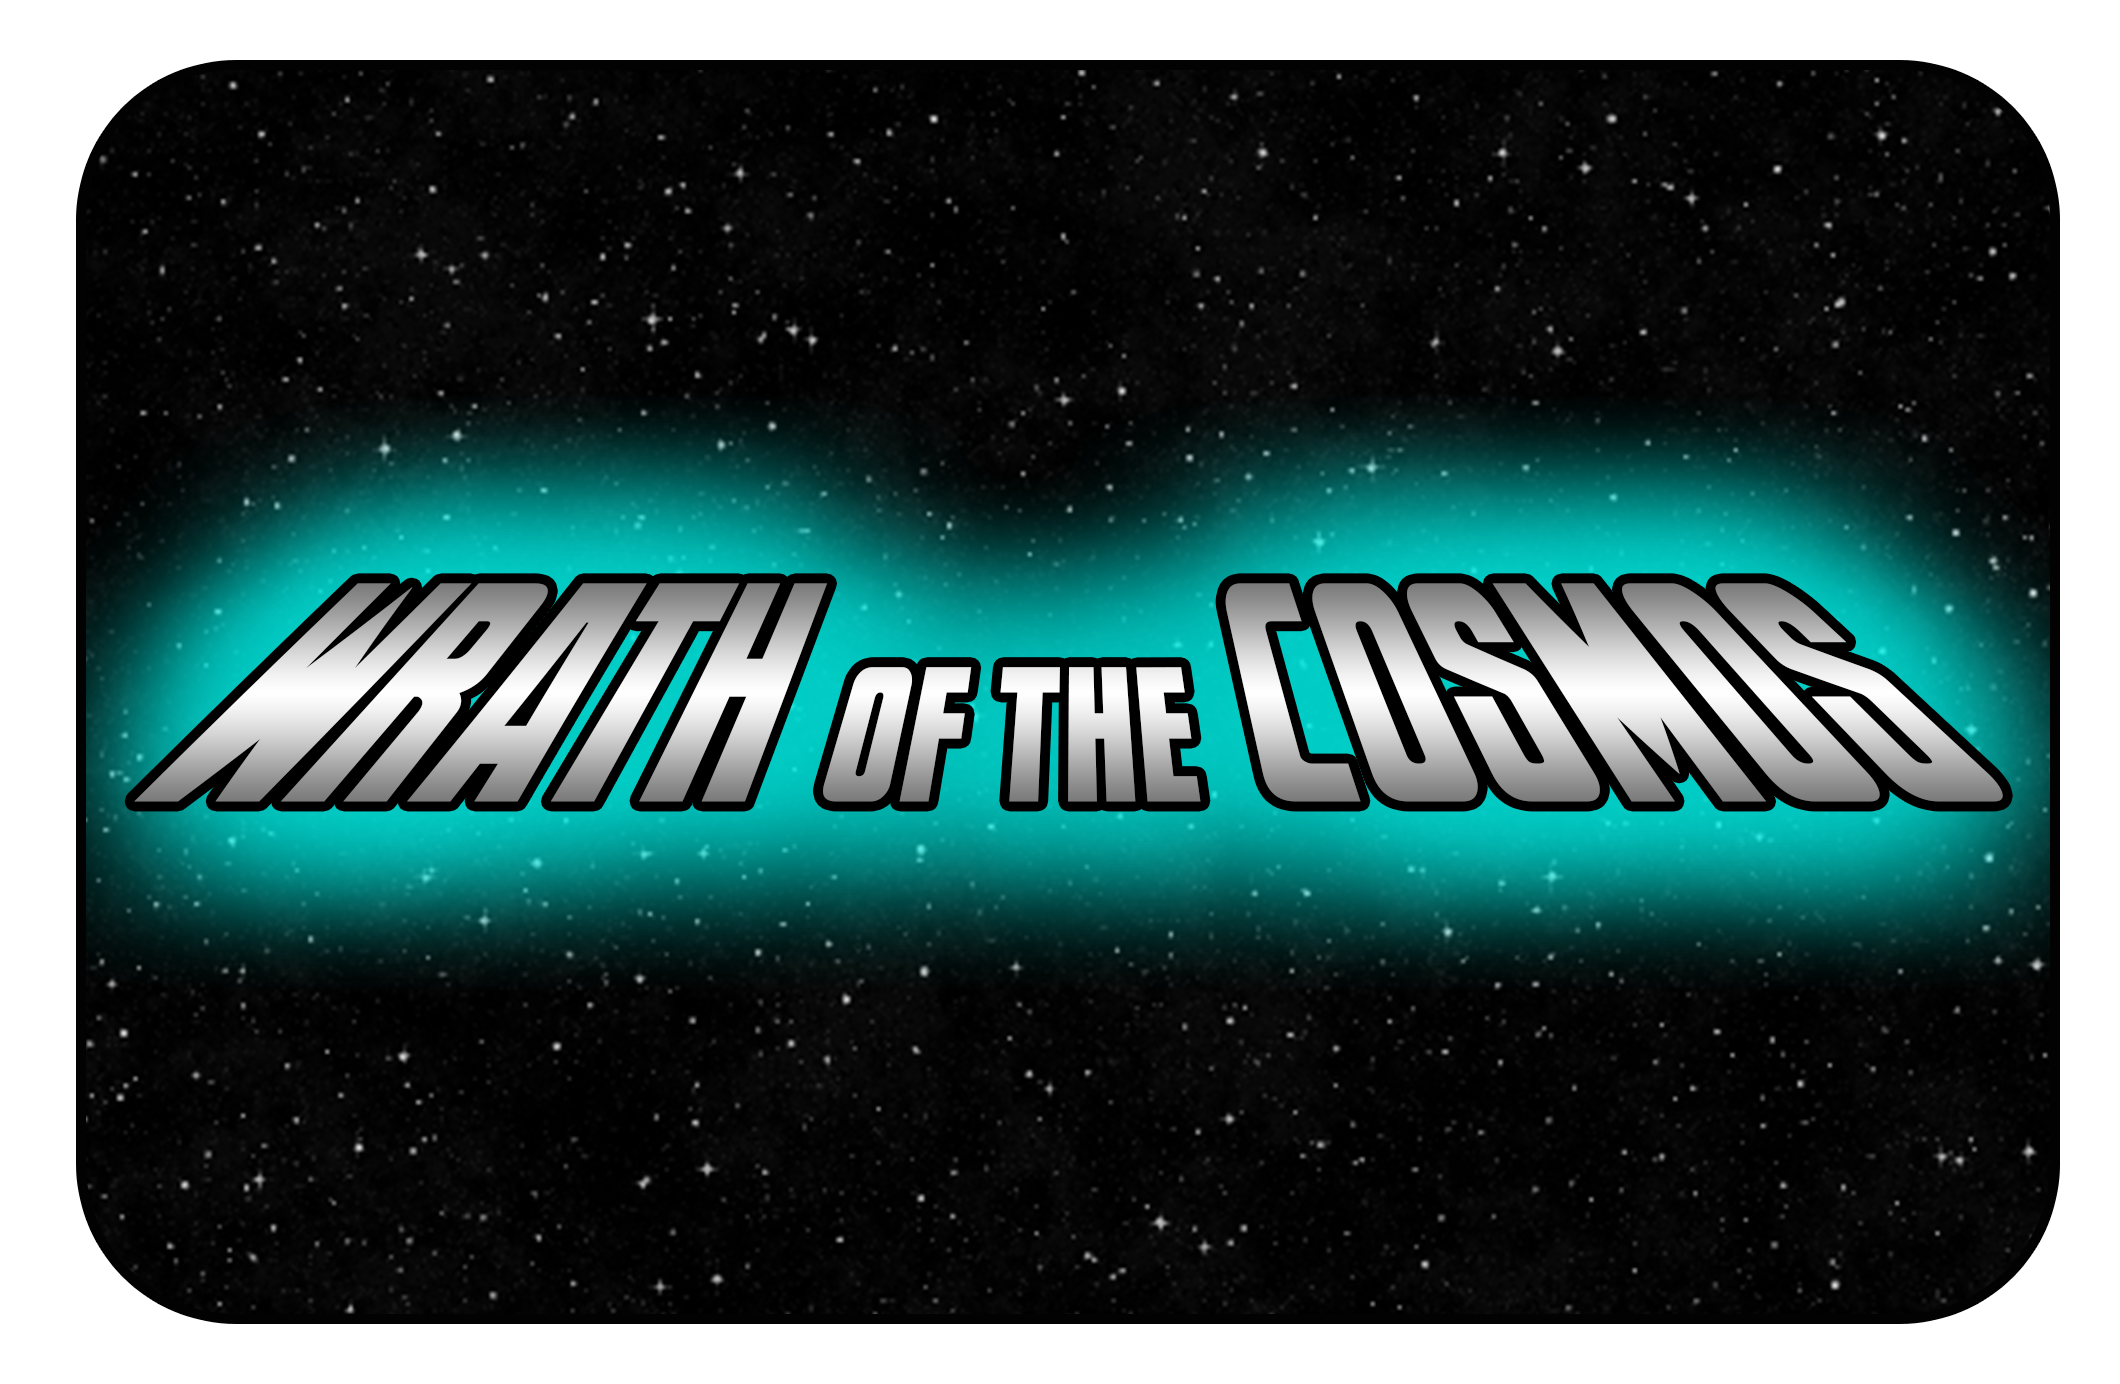 _ICON Wrath of the cosmos (with glow).png